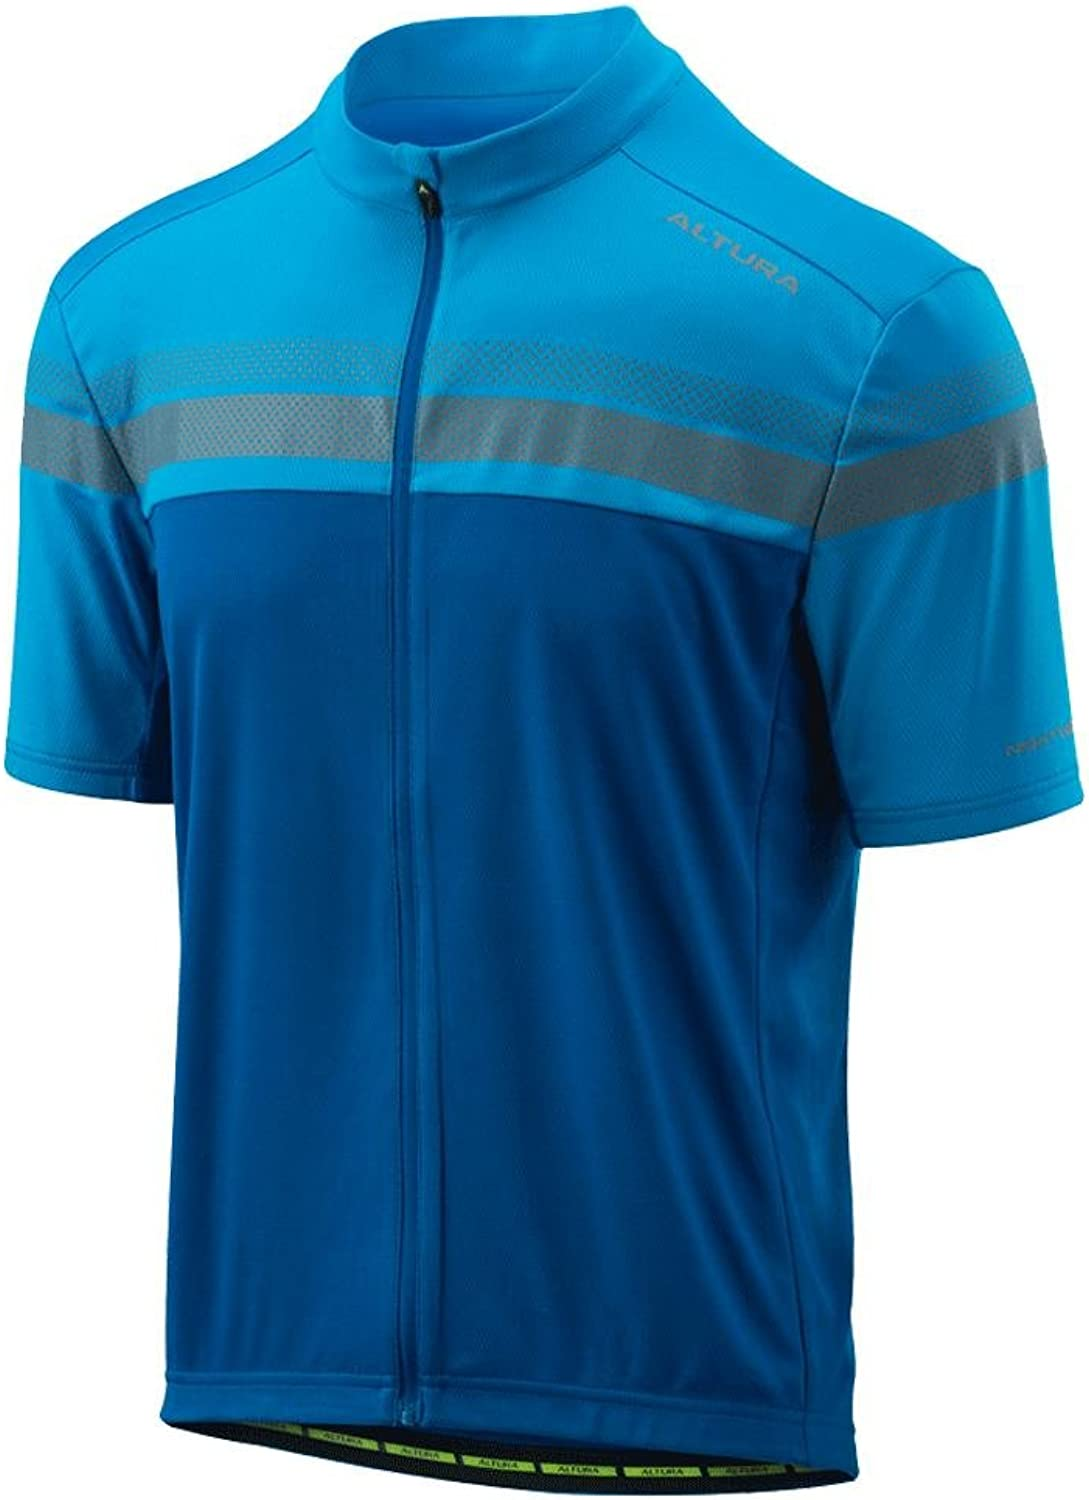 Altura Team blueee 2018 Nightvision Short Sleeved Cycling Jersey (Large, blueee)